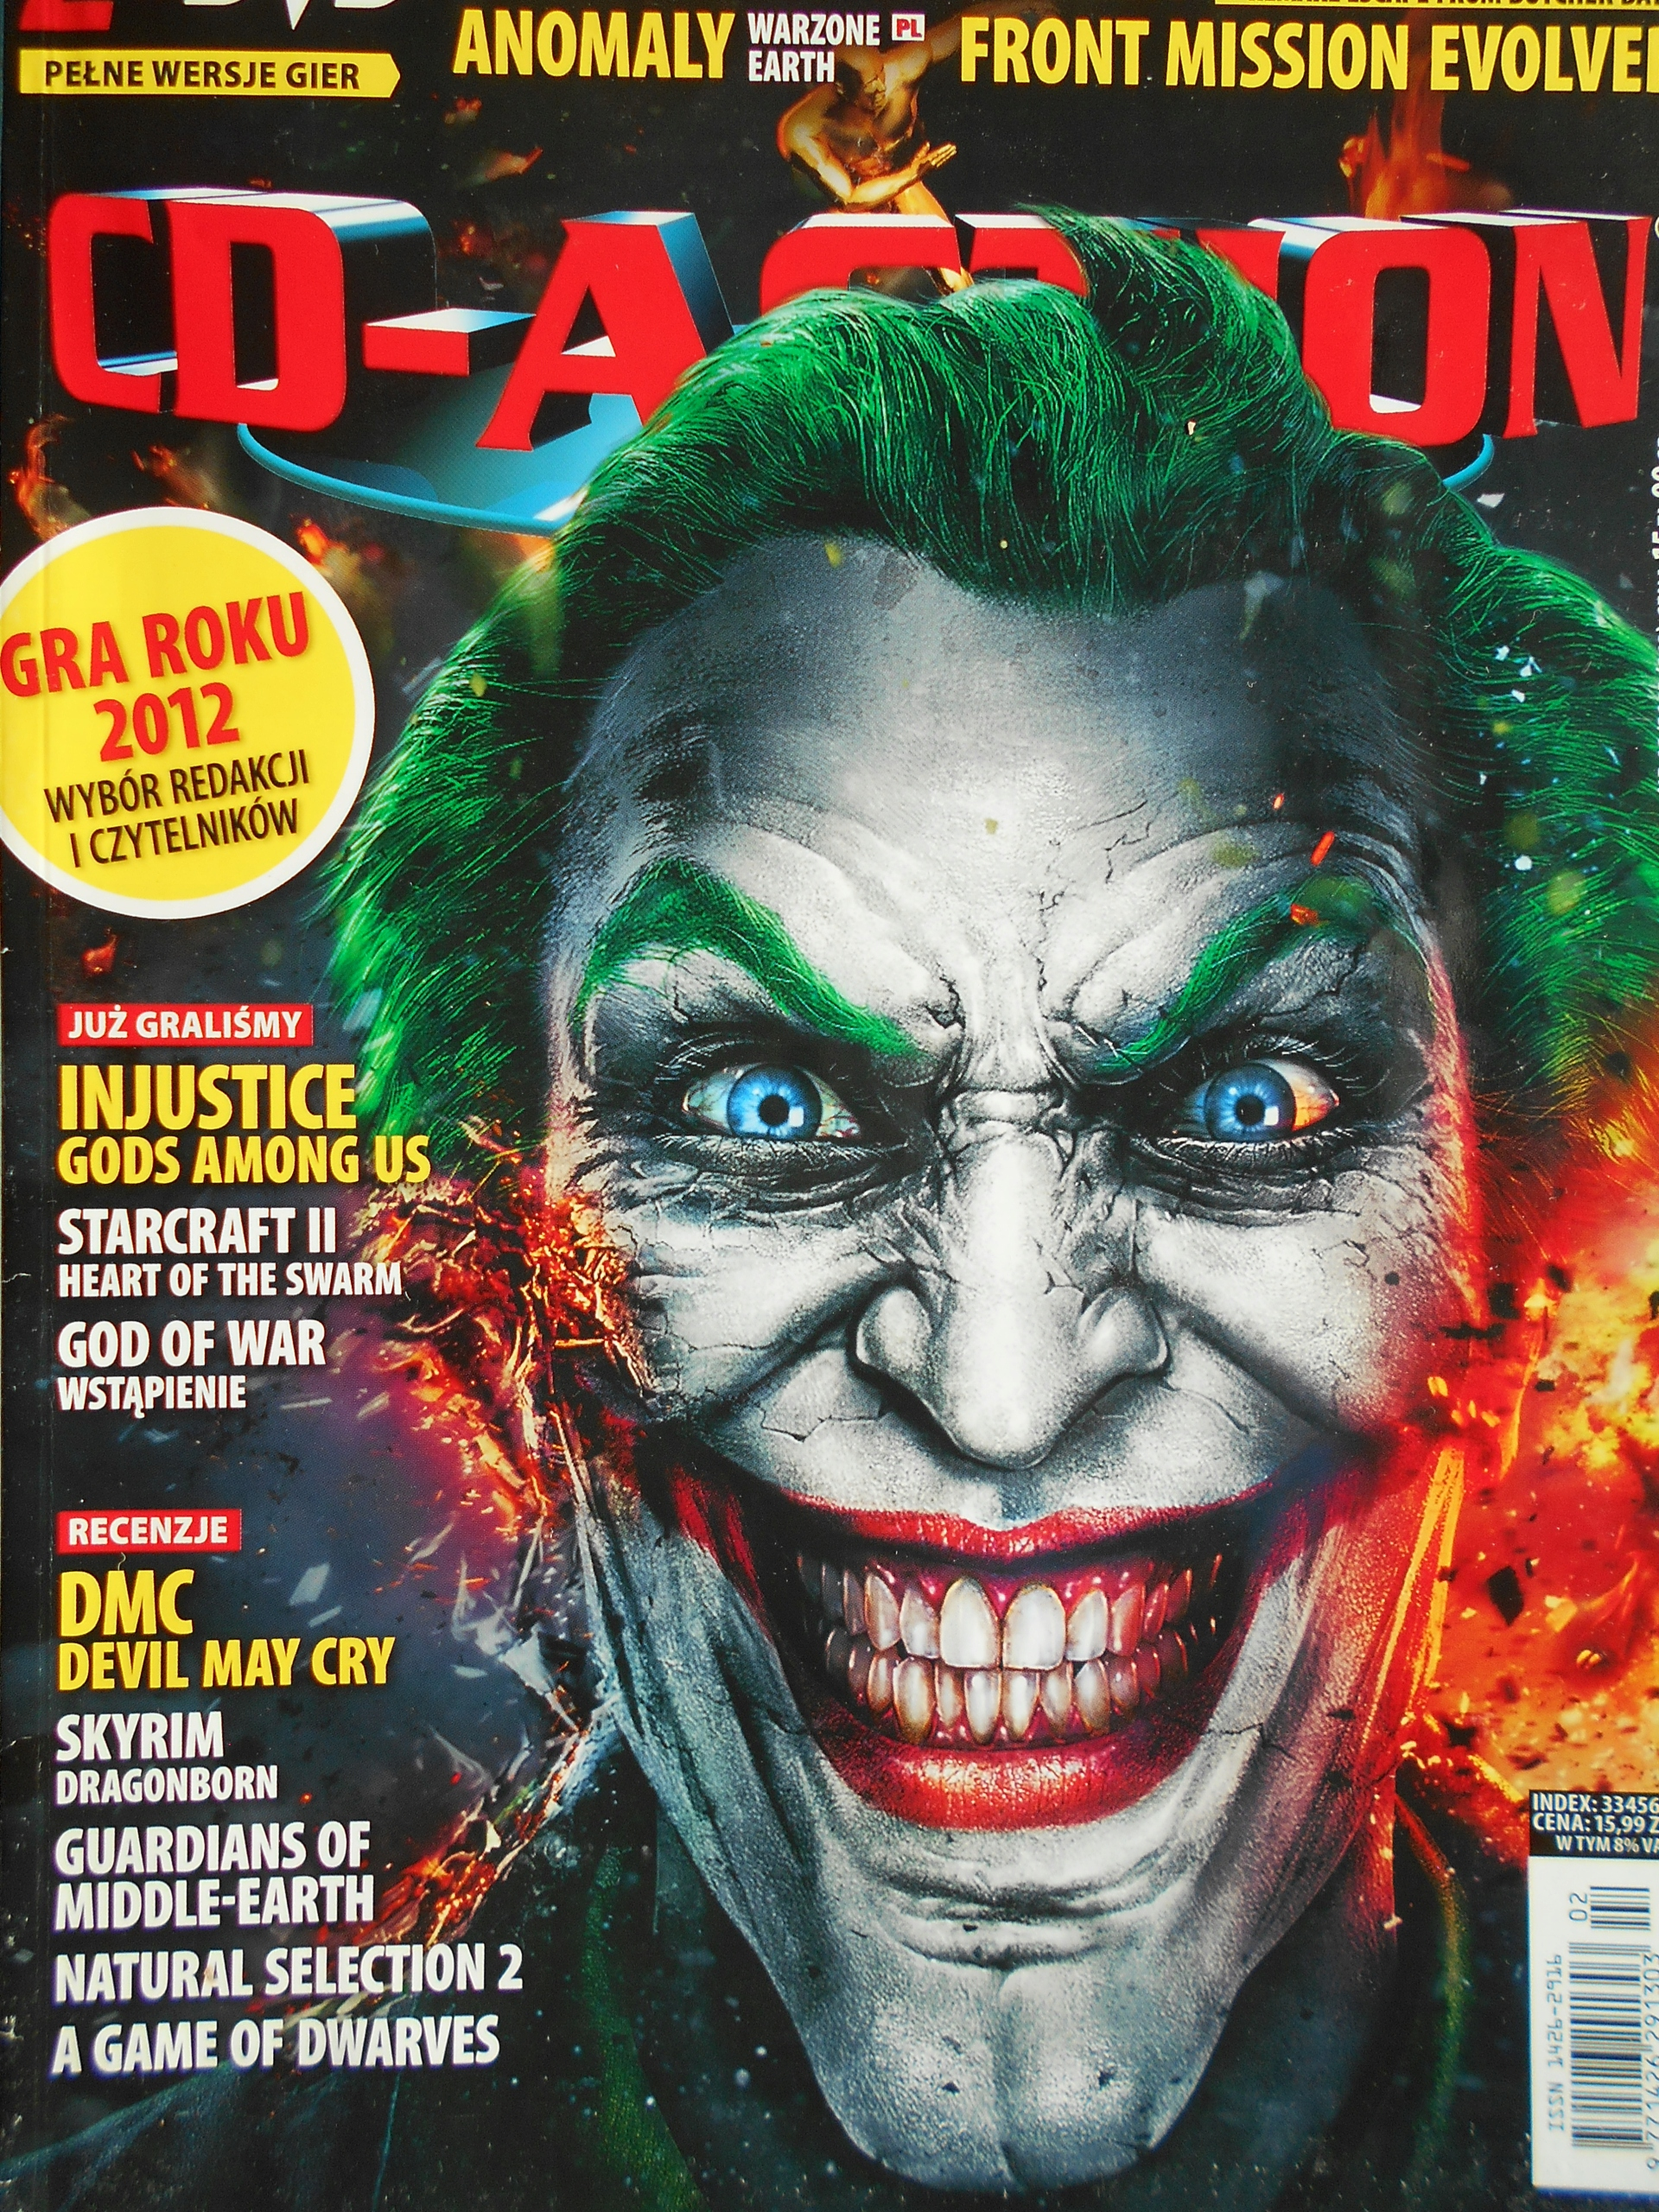 CD-ACTION * NR 02 / 2013